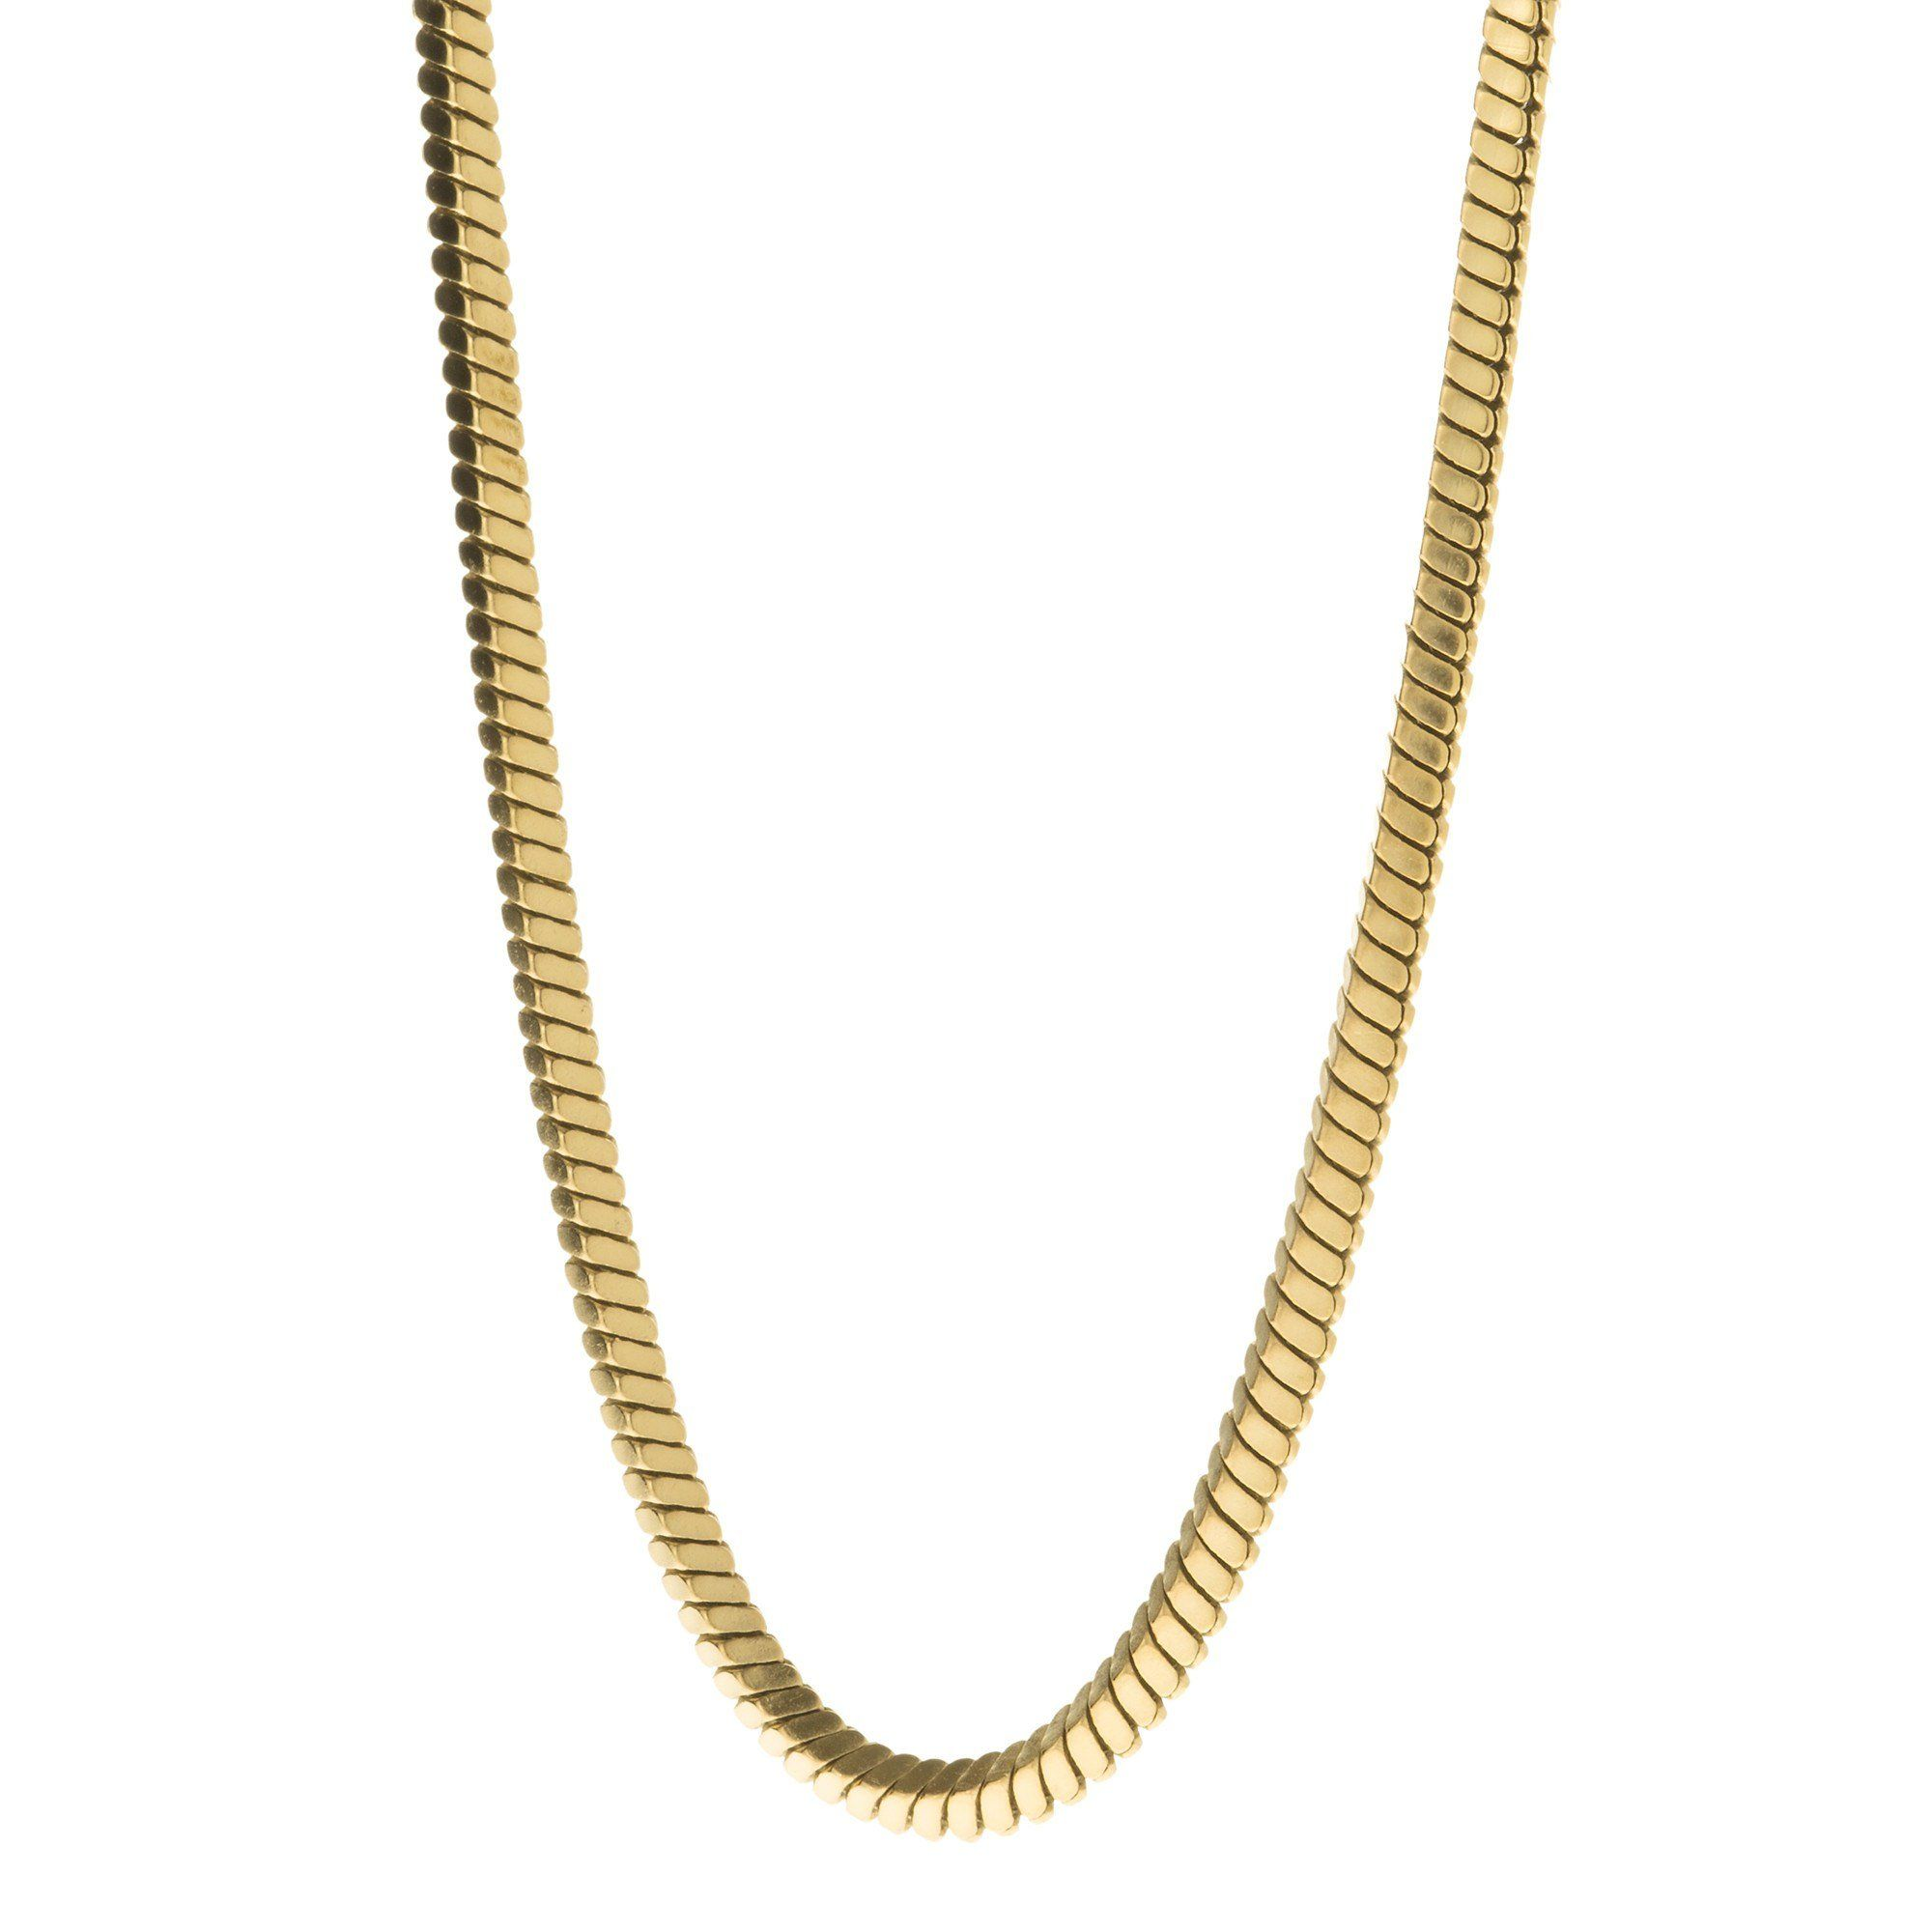 Chains For Men Gold Chain Designs For Mens Latest Gold Chain Designs With Price And Weight Gold Chain Gold Snake Chain Mens Chain Necklace Gold Chains For Men